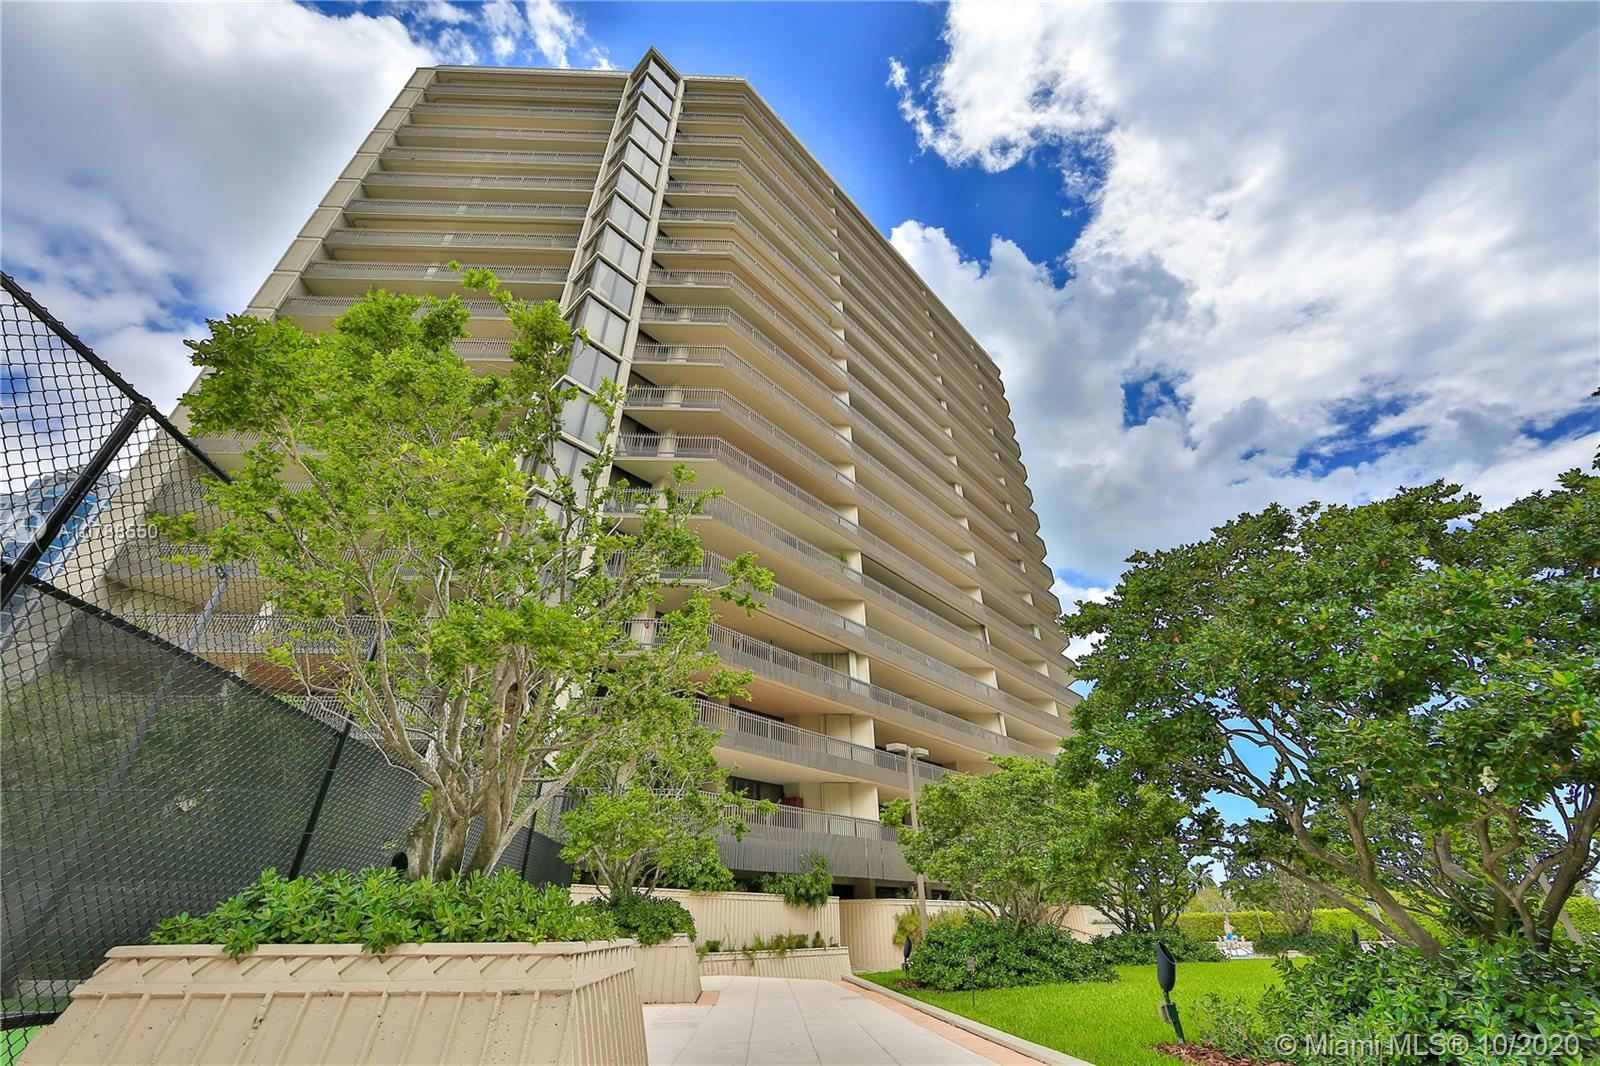 Yacht Harbour Condo is one of Coconut Grove's most impeccable buildings! Created and designed by the world renowned architect, Kenneth Treister, this building offers unique and gorgeous motif. This condo offers large, beautiful windows offering natural light and stunning views that gives the unit a bright and airy feel throughout. Features also include spacious rooms, built-in closet cabinetry, and an amazing open balcony with views of the pool area and harbor. This iconic building offers 24-7 security, library, fitness center, large heated pool, two tennis courts, BBQ area, and much more! Located in the heart of the Grove! Just walking distance from Cocowalk, amazing shops, parks and restaurants, and more!